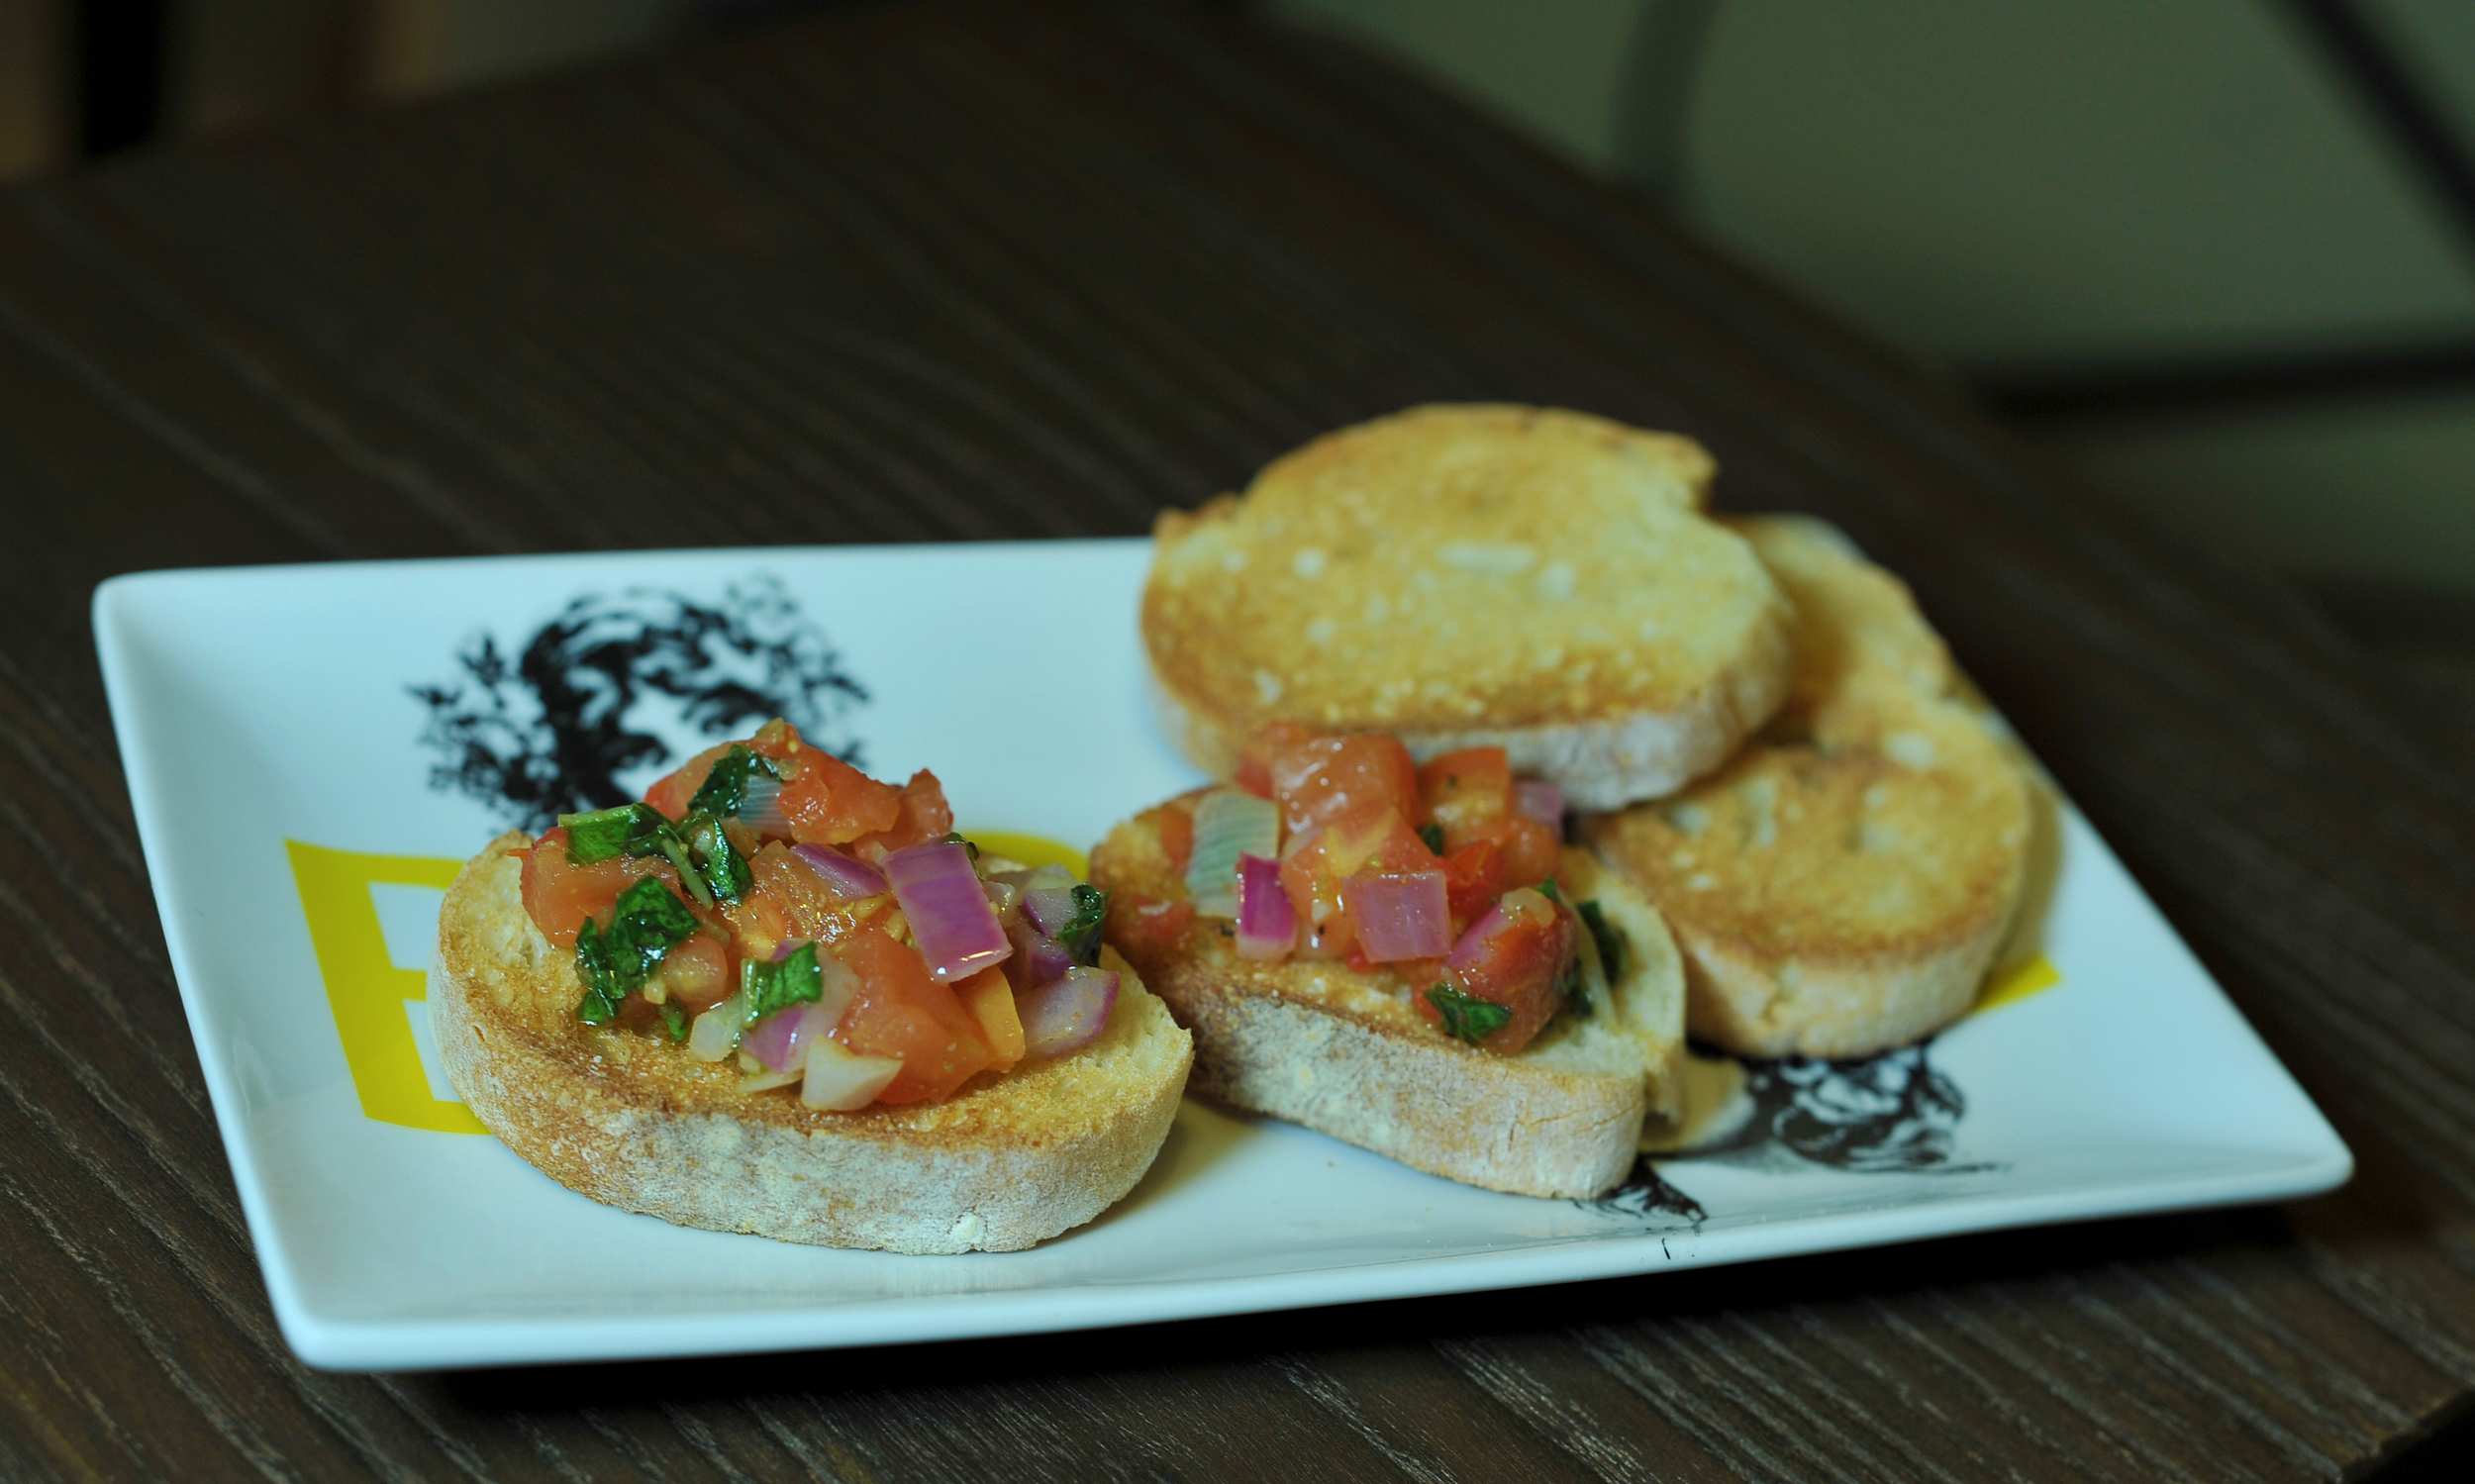 chicago-food-blog-bruschetta-3.jpg